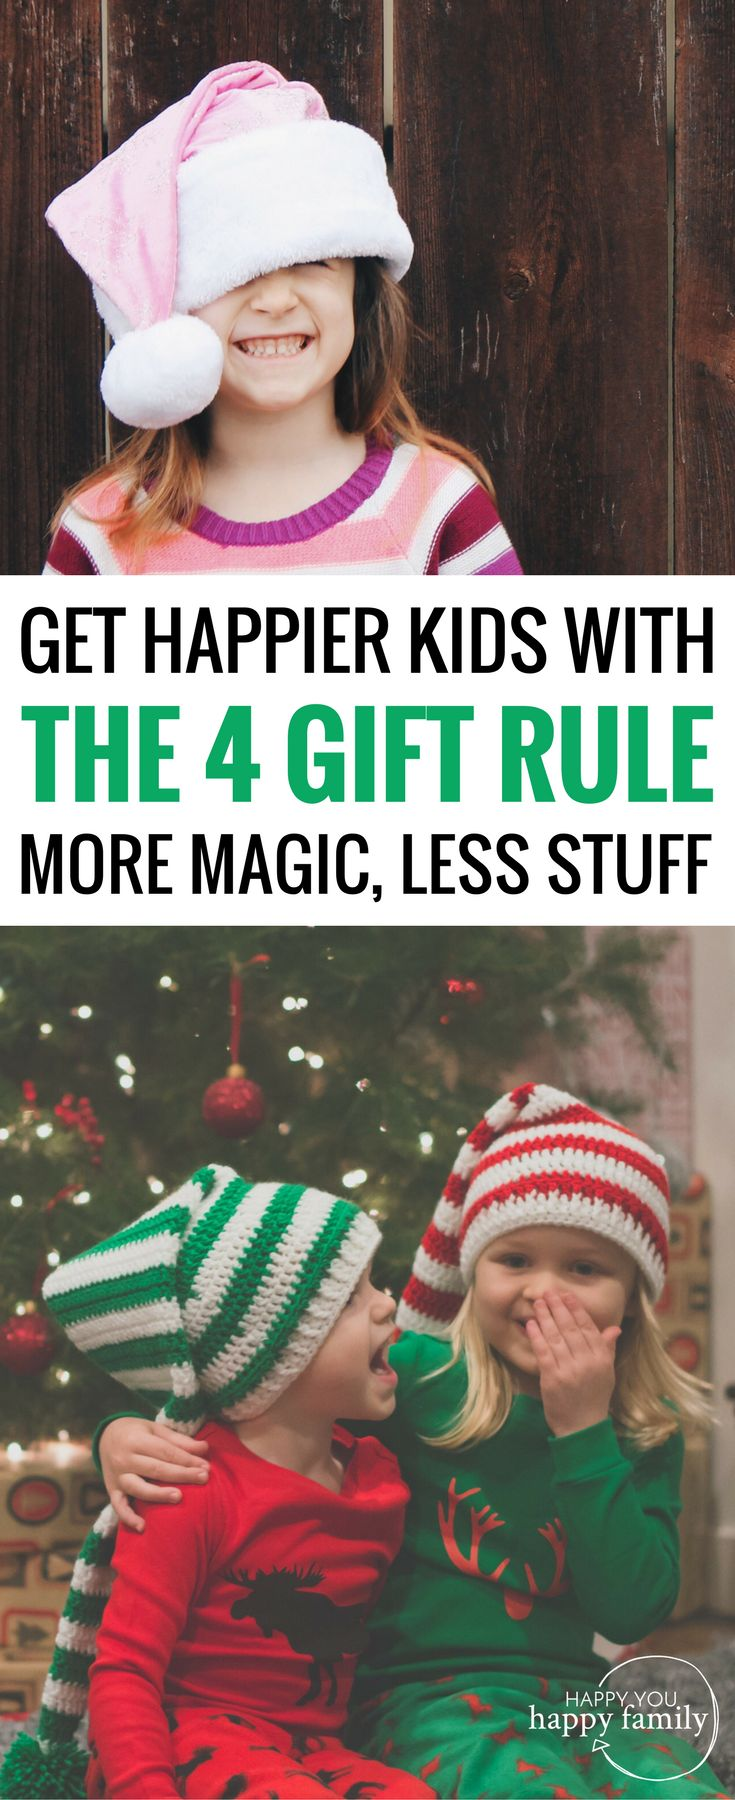 "Interested in the 4-gift rule for Christmas but worried your kids will revolt? This post is SO HELPFUL because it gives you everything you need to adopt the 4-present tradition for your family. And here's the BEST part: Your kids will actually be happier with just 4 gifts for Christmas! All the gotchas to avoid plus a list of the best ""want need wear read"" ideas for gifts. #christmasgifts #giftsforkids #simplechristmas #kidschristmas #christmastradition"